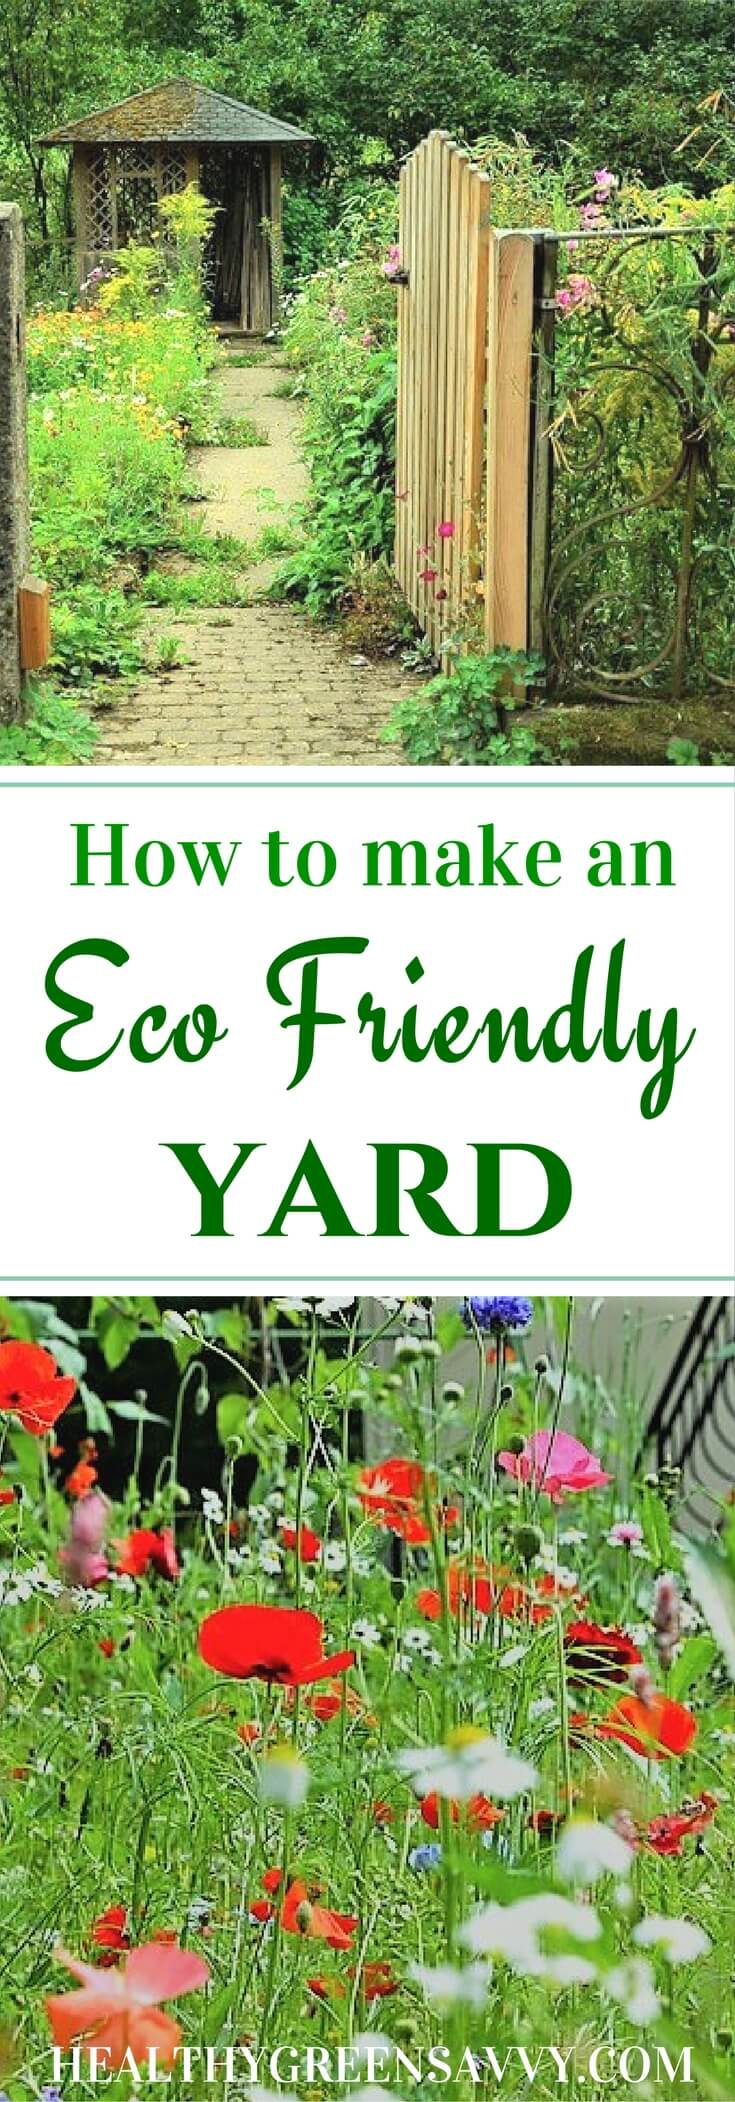 Eco friendly landscaping benefits you AND the planet! Save money, improve  air quality, - Eco Friendly Landscaping: How To Put Your Yard To Work For The